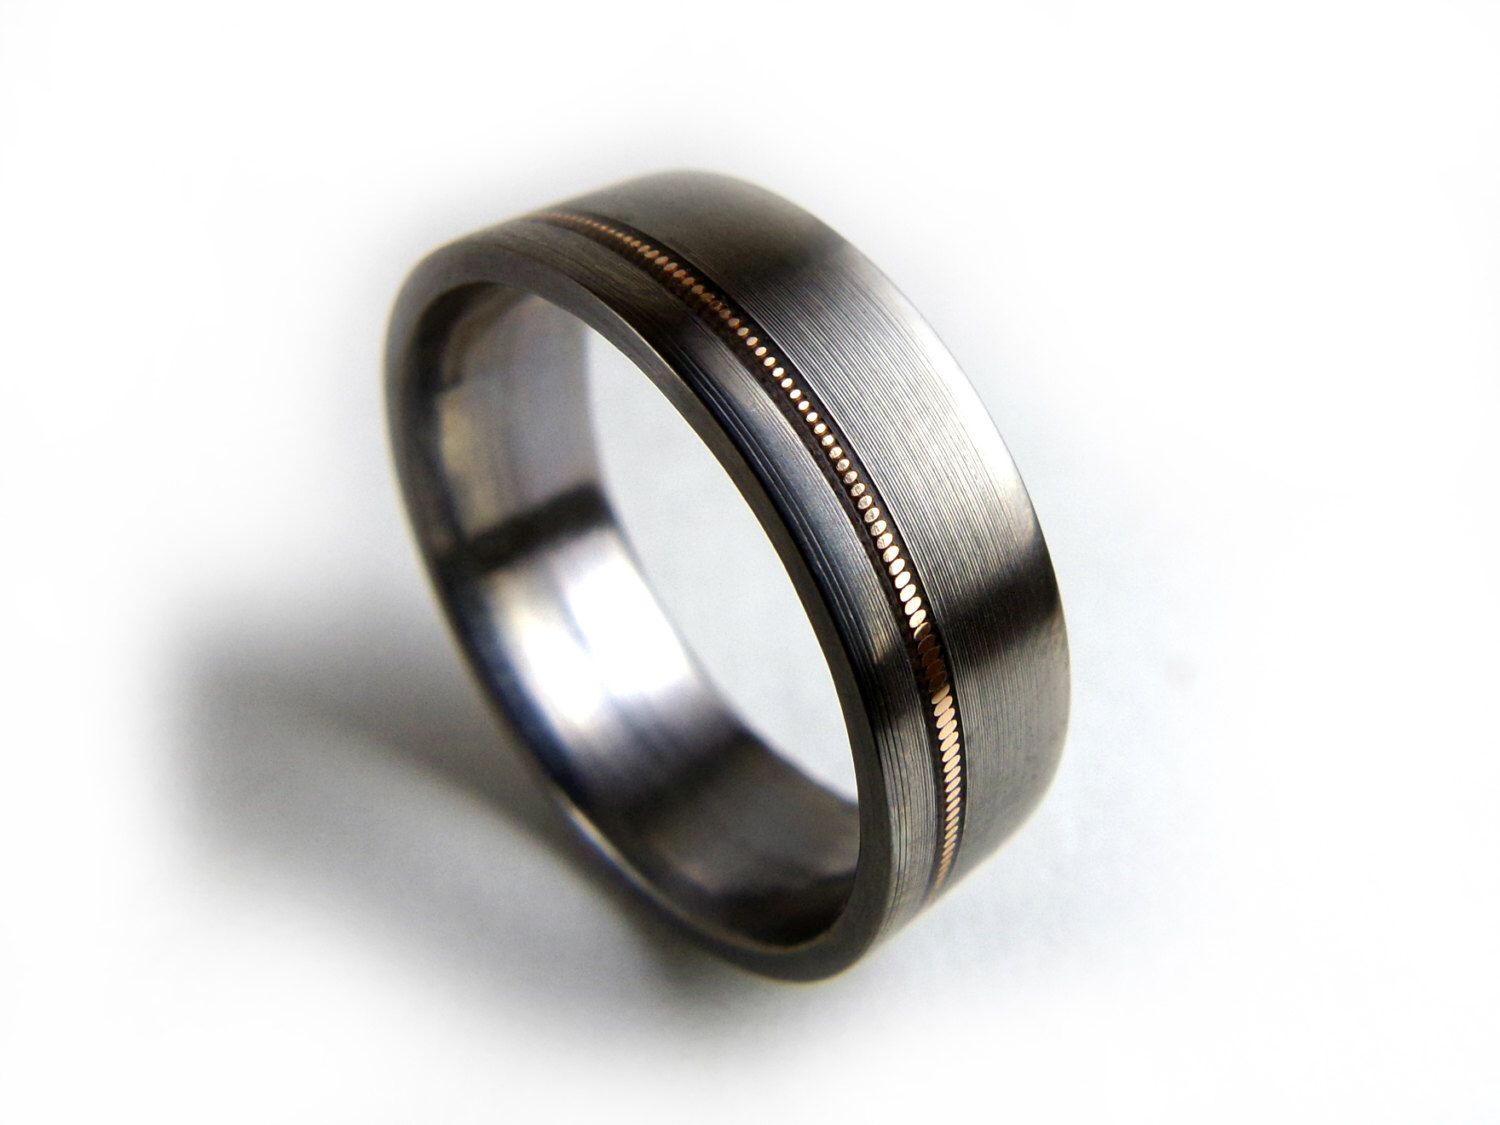 Guitar String Ring, Guitar String Jewelry, Guitar String Inlay, Ring for Men, Ring for Women, Titanium Band, Titanium Ring, Music Jewelry by GrandJunctionGuy on Etsy https://www.etsy.com/listing/229554582/guitar-string-ring-guitar-string-jewelry